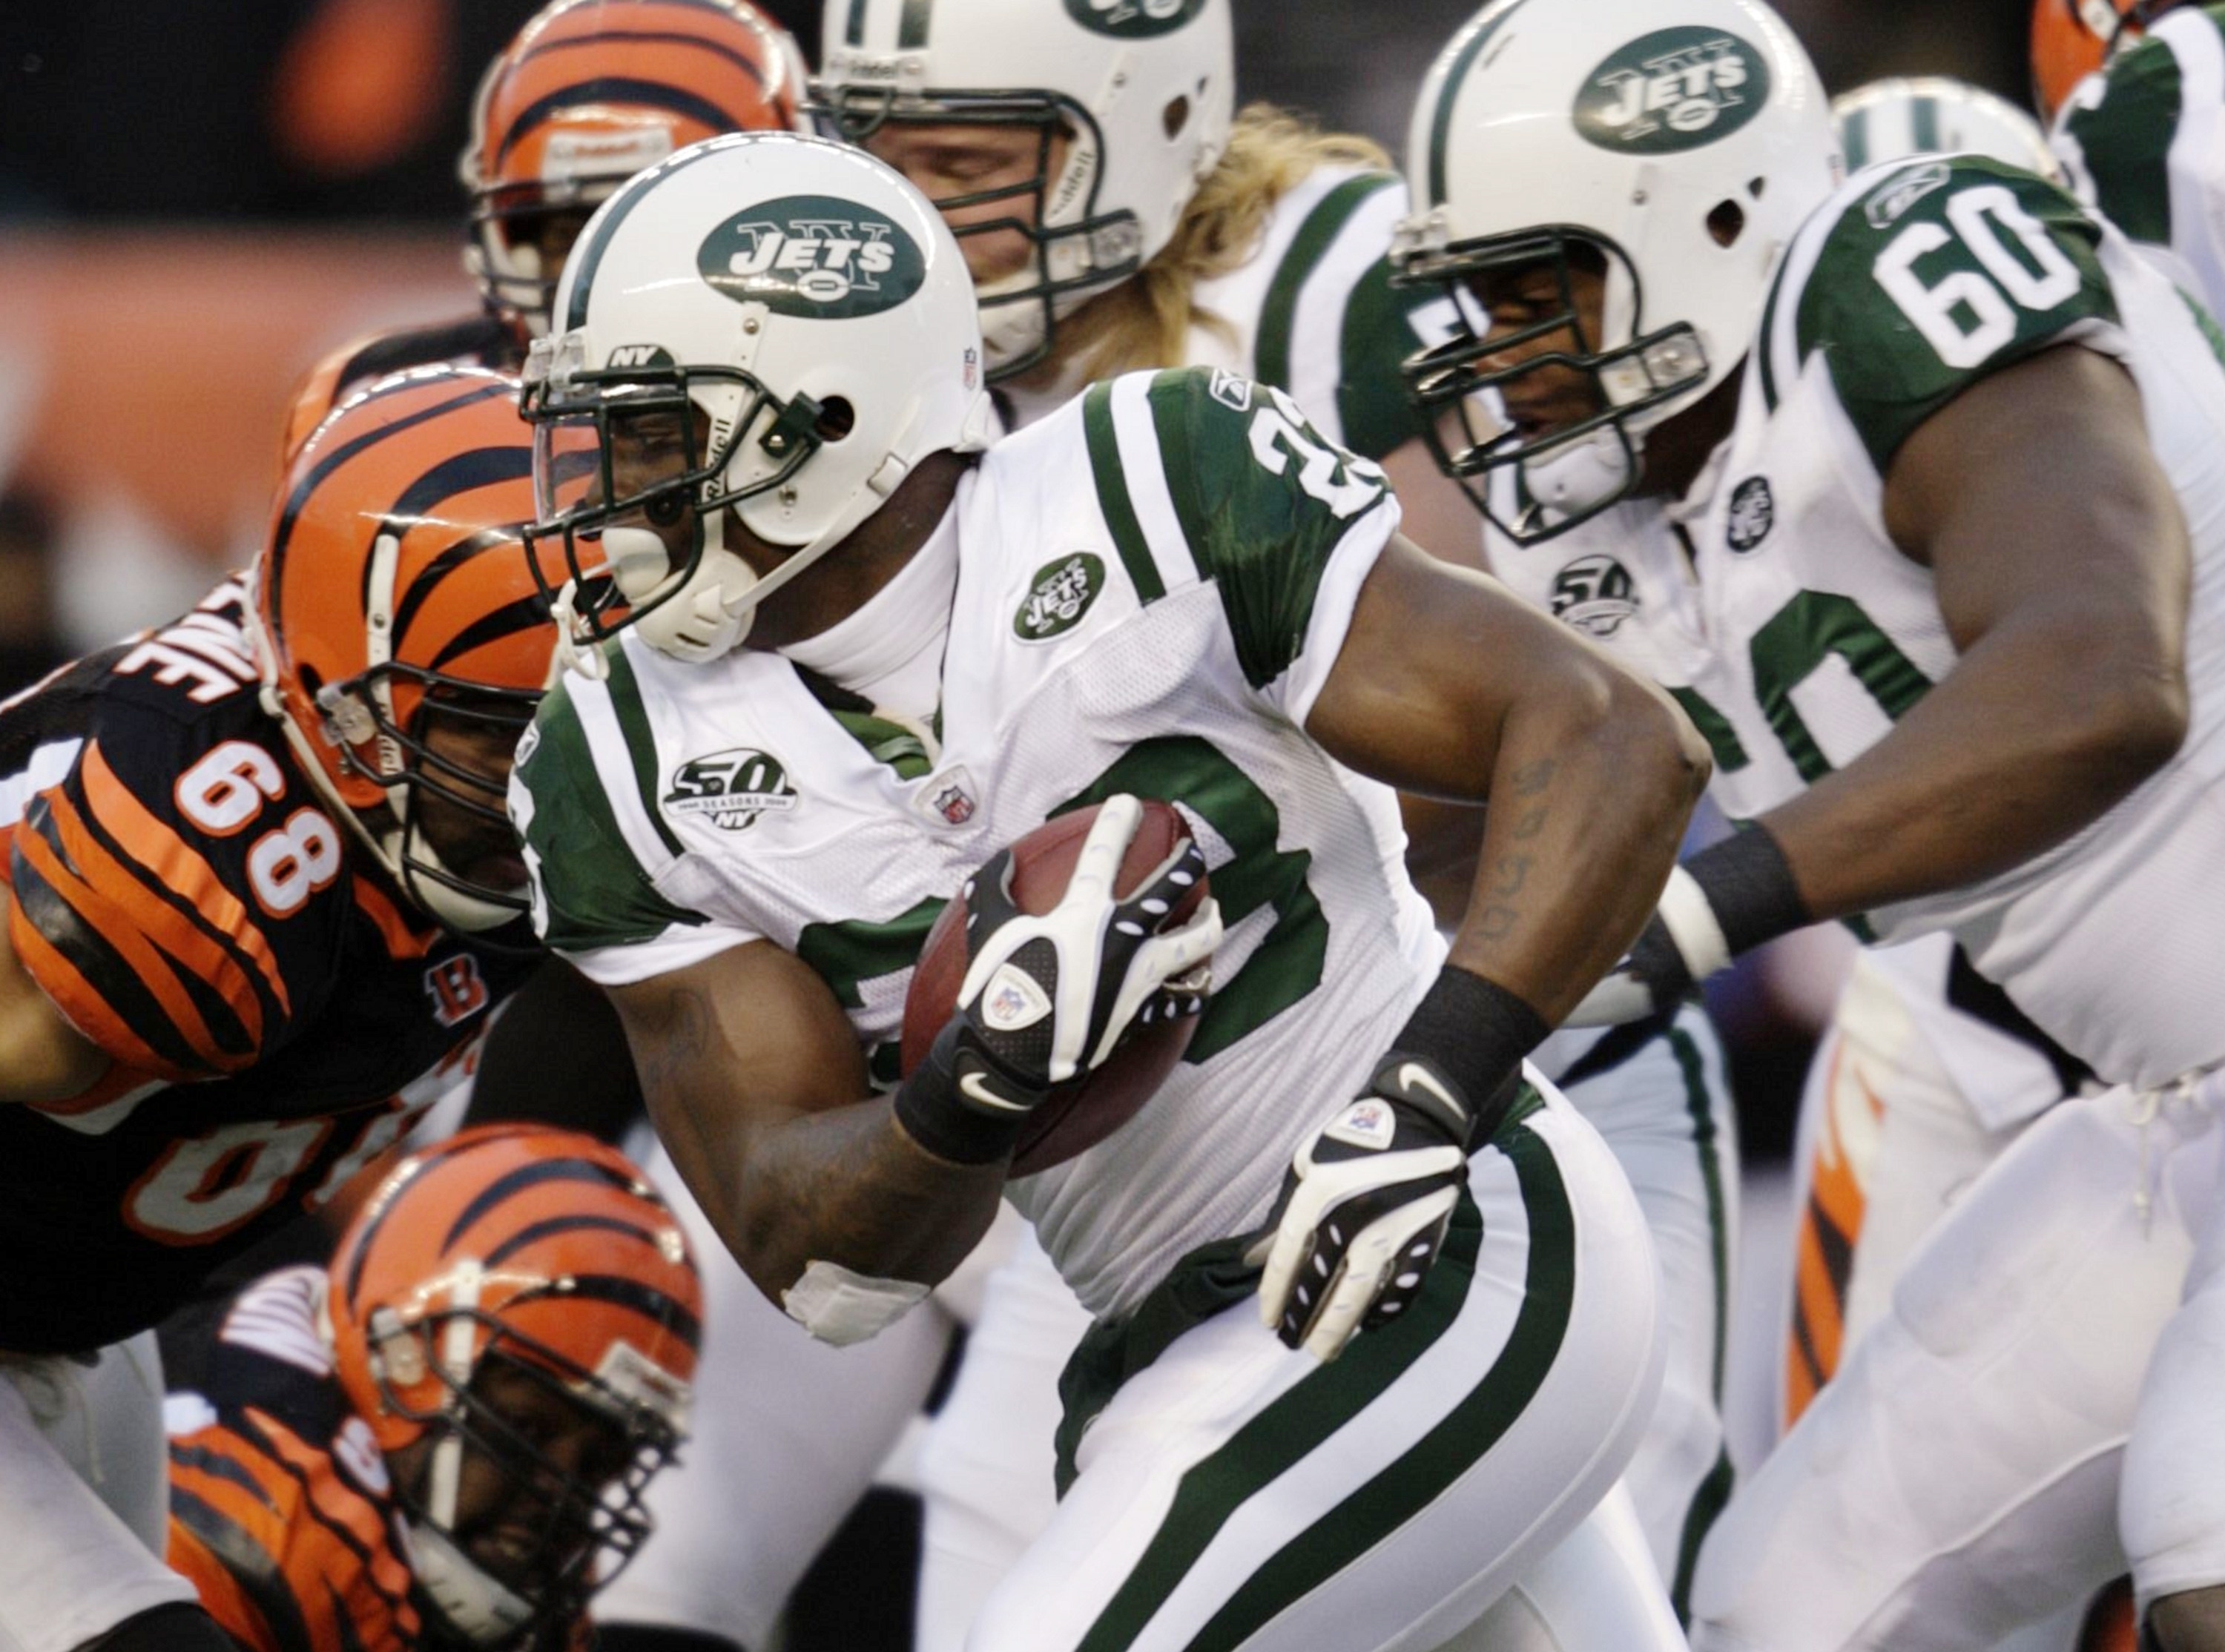 CINCINNATI - JANUARY 9:  Running back Shonn Greene #23 of the New York Jets runs with the ball against the Cincinnati Bengals during the 2010 AFC wild-card playoff game at Paul Brown Stadium on January 9, 2010 in Cincinnati, Ohio. (Photo by Andy Lyons/Get